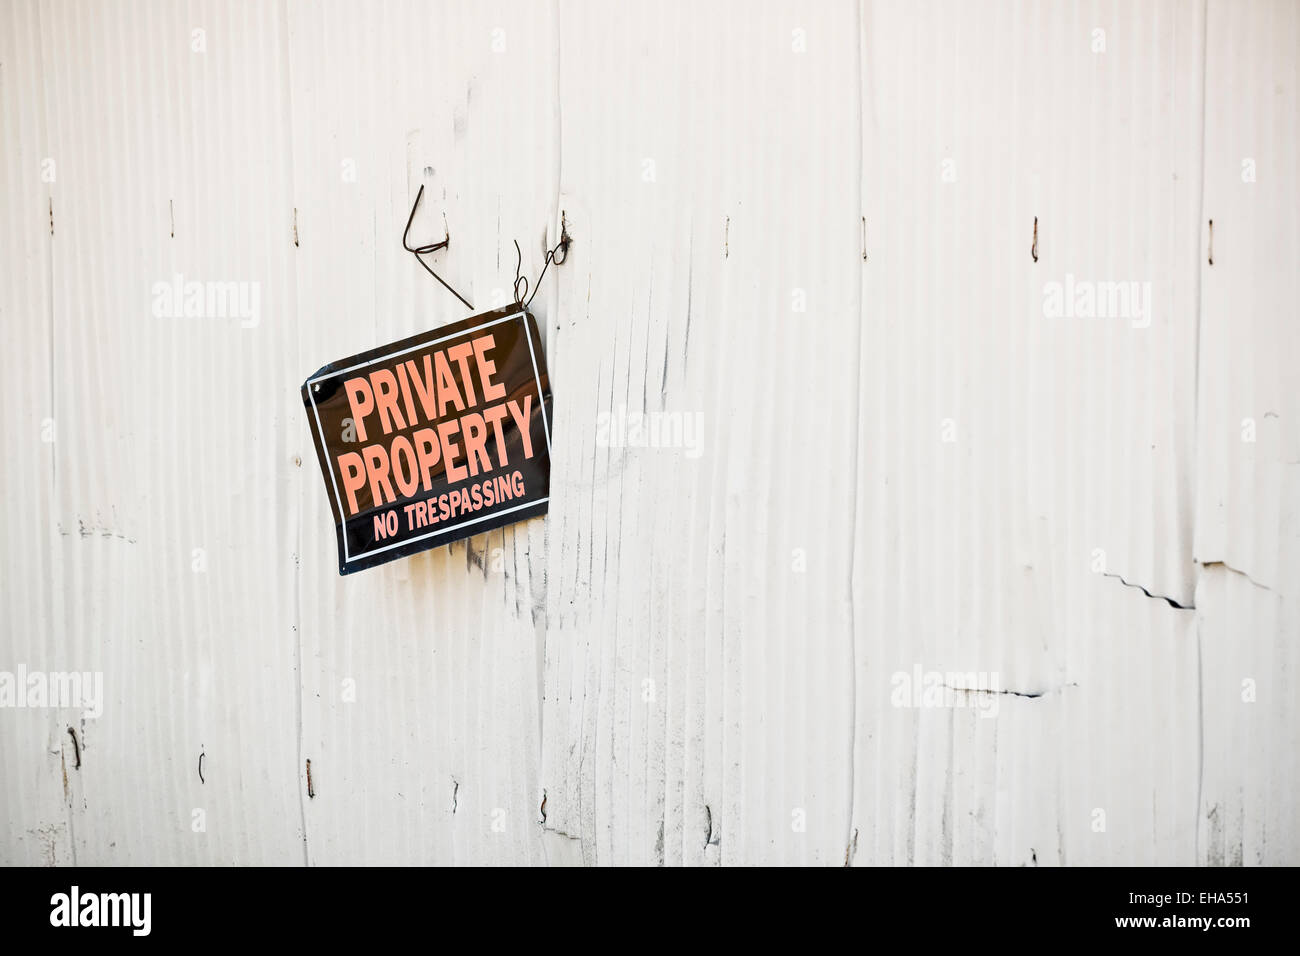 Private Property No Trespassing sign loosely attached to a metal building - Stock Image